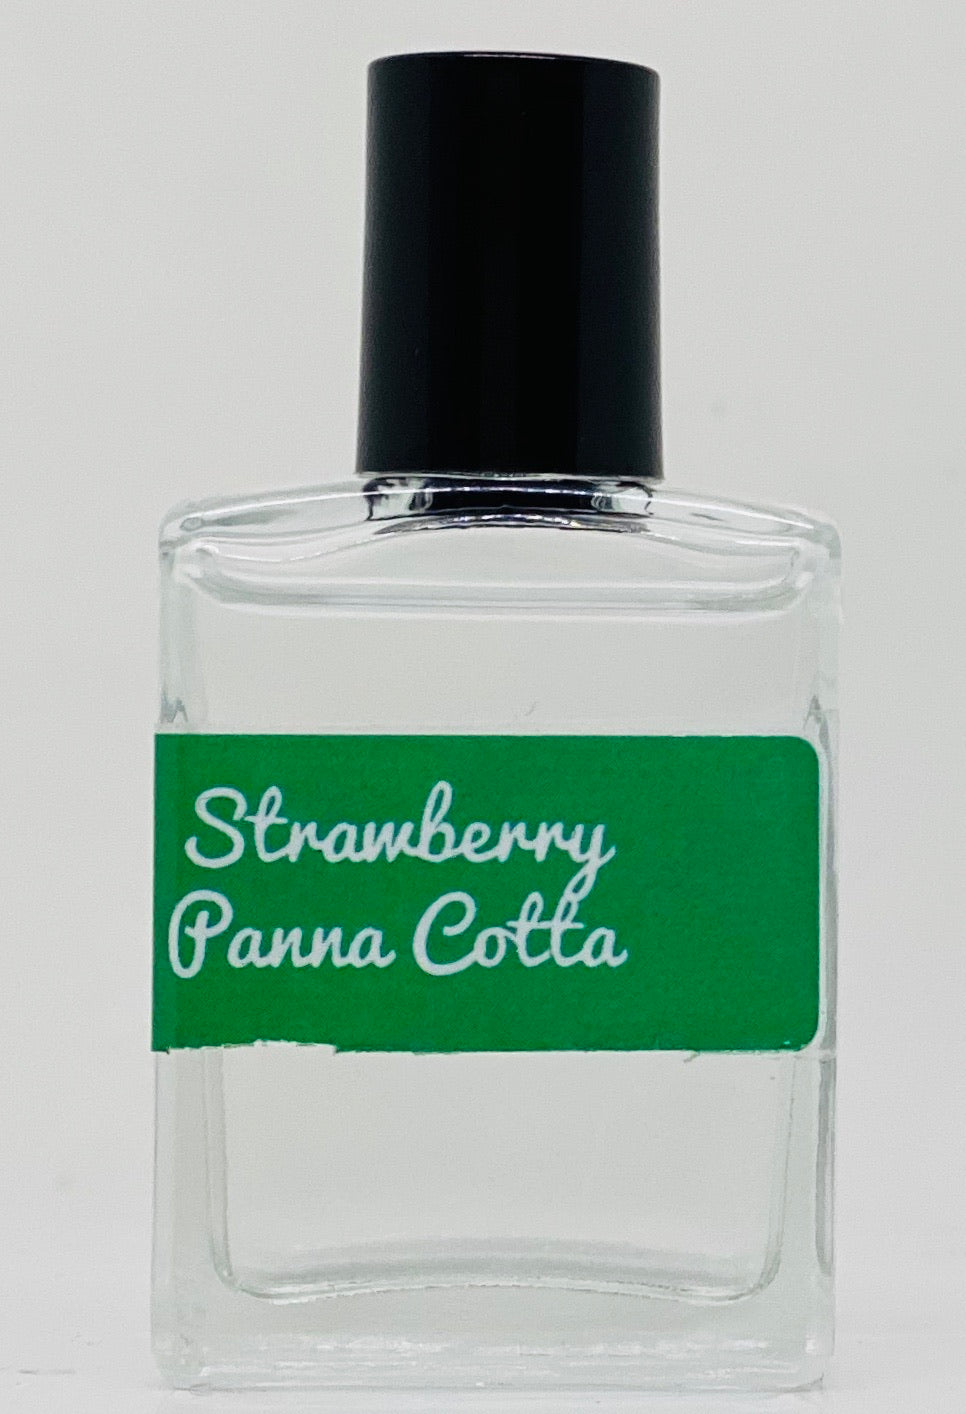 Strawberry Panna Cotta Handmade Eau de Parfum Spray